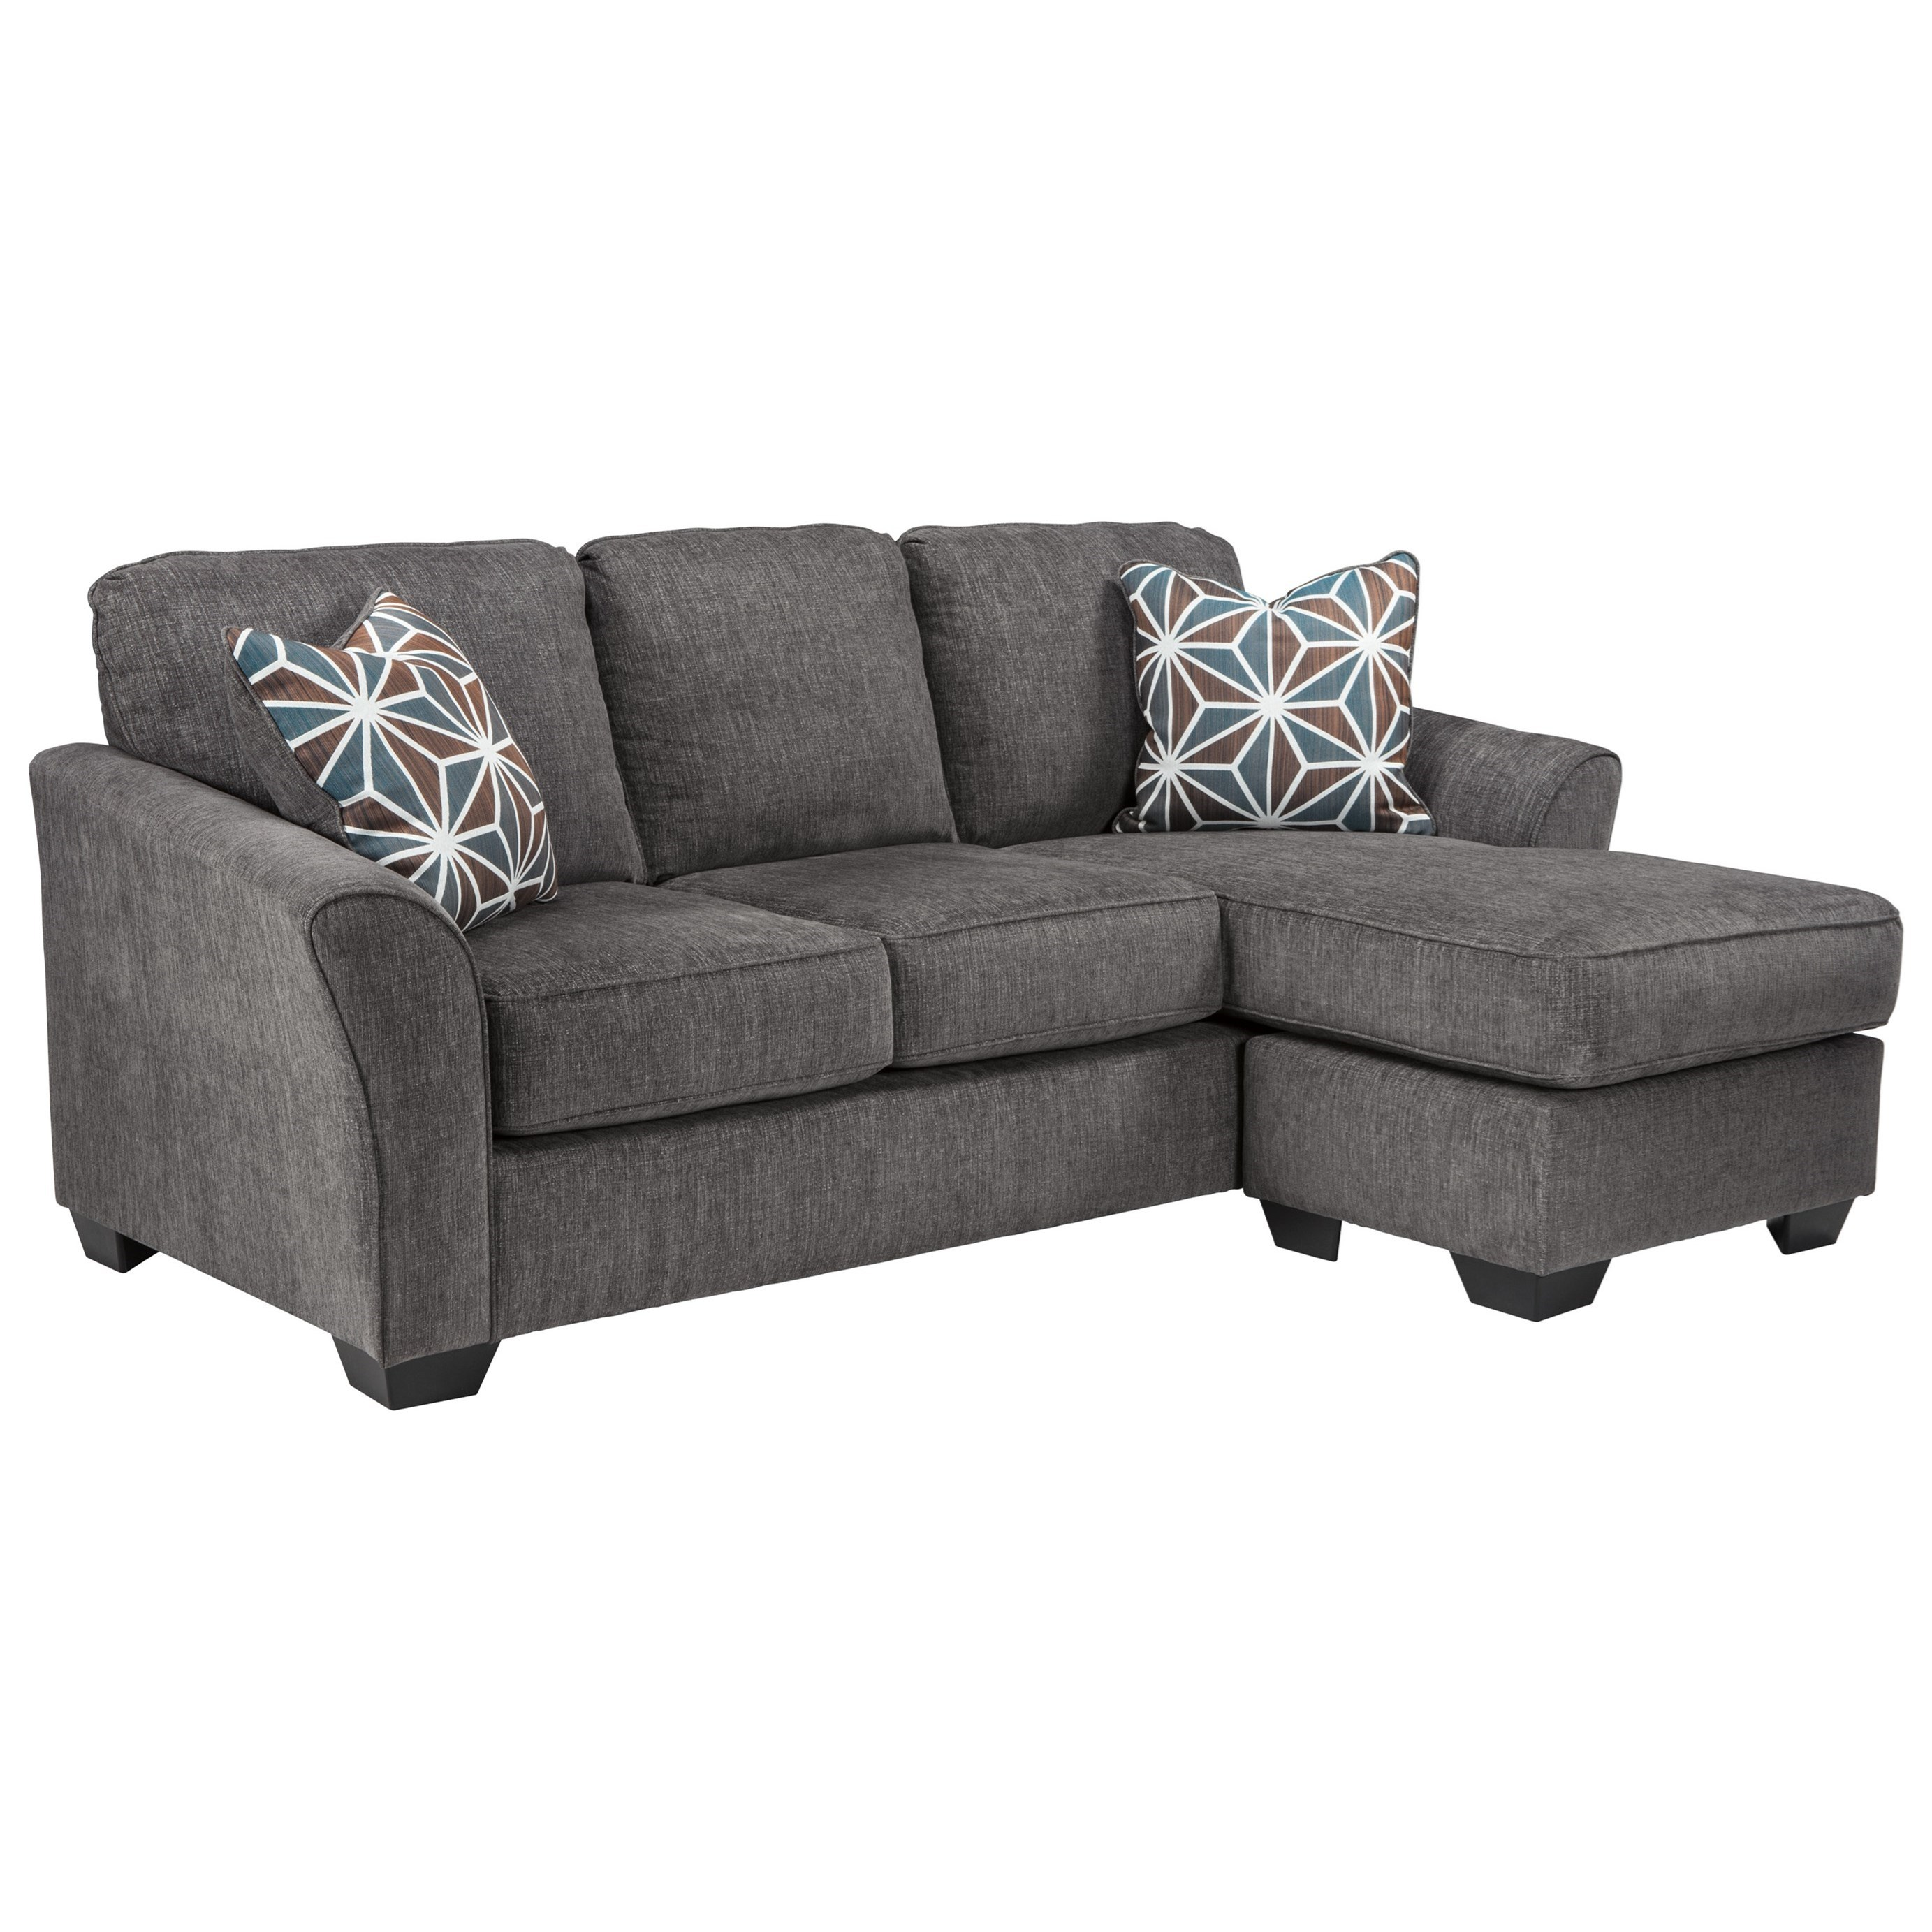 brise casual contemporary sofa chaise becker furniture world sectional sofas. Black Bedroom Furniture Sets. Home Design Ideas